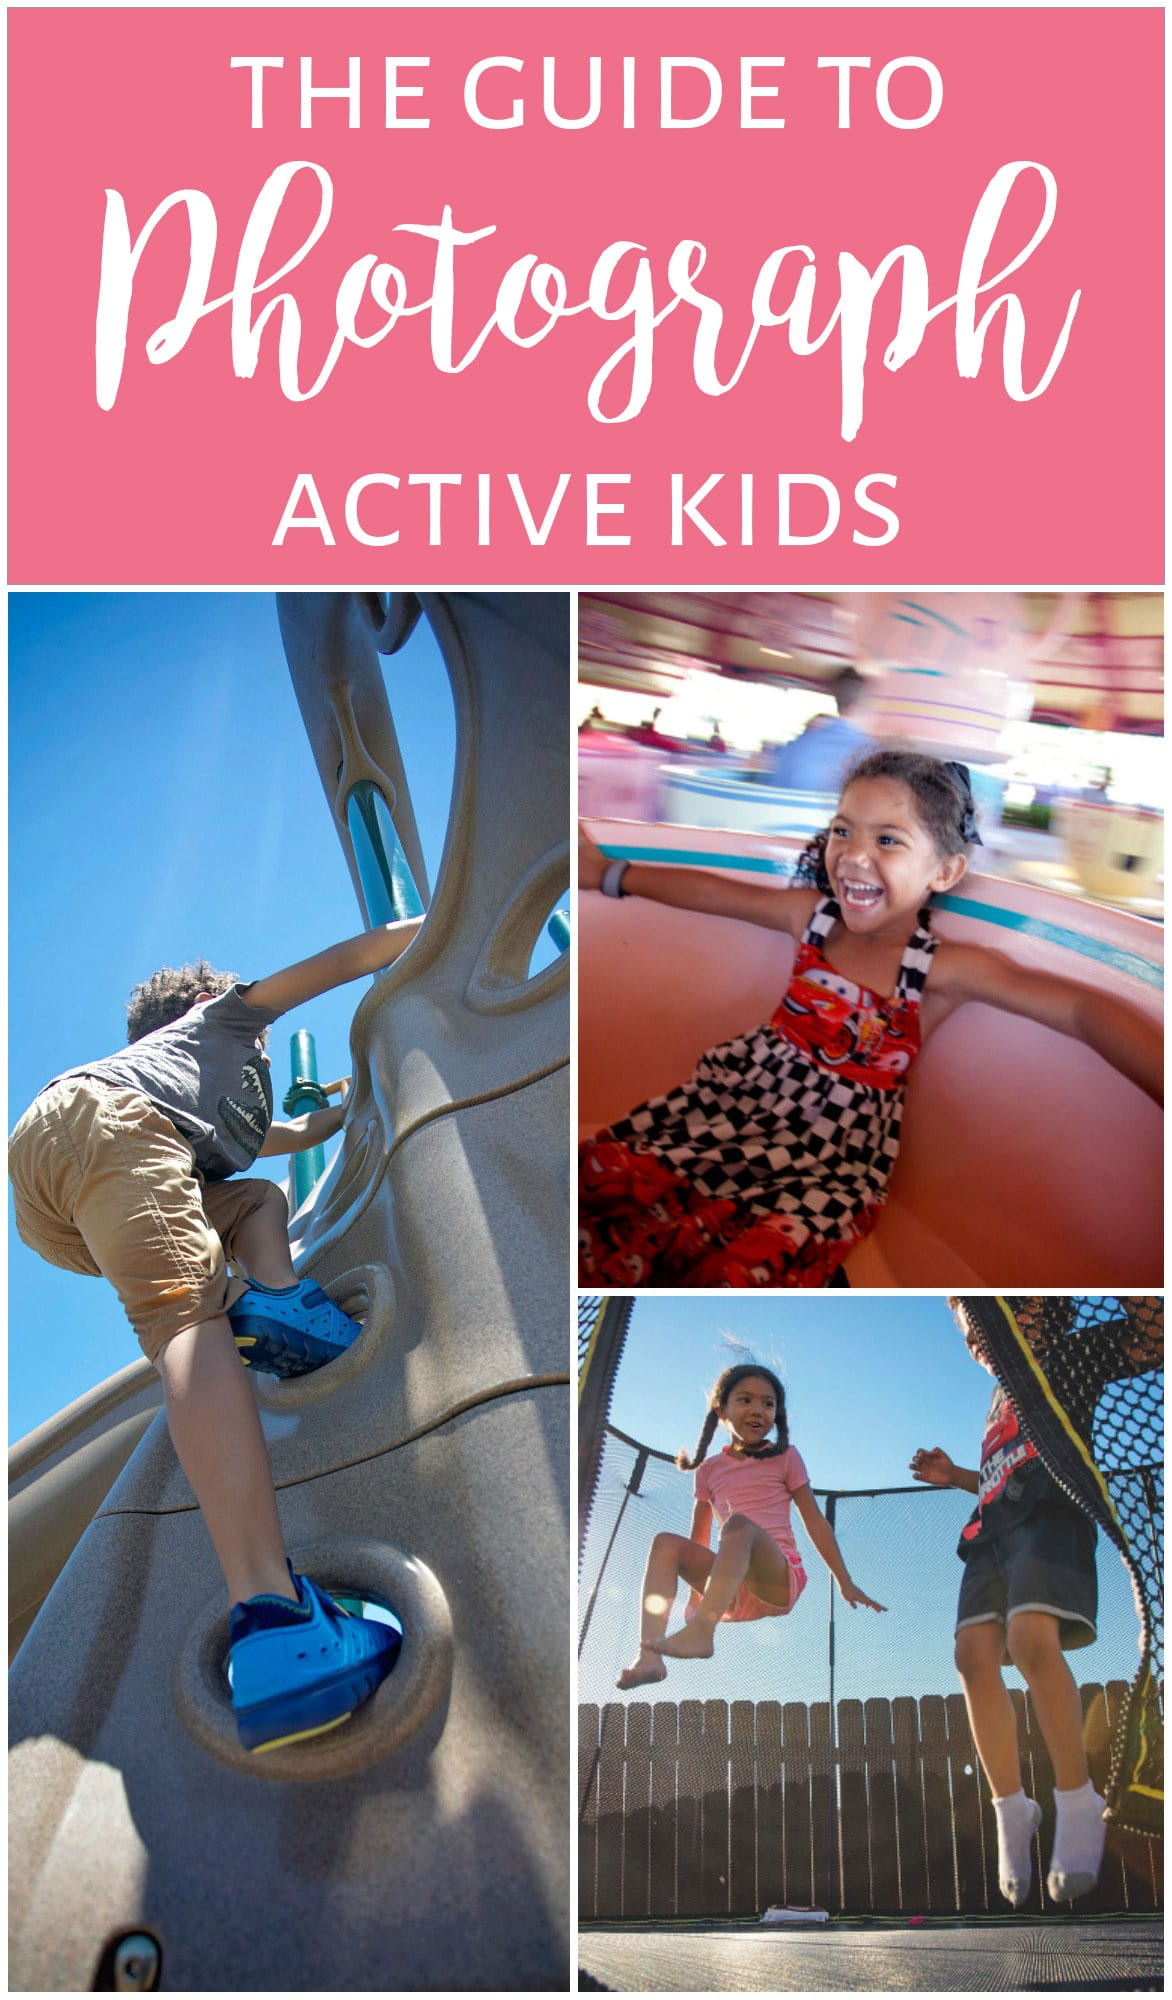 10 tips to help you photograph your active kids